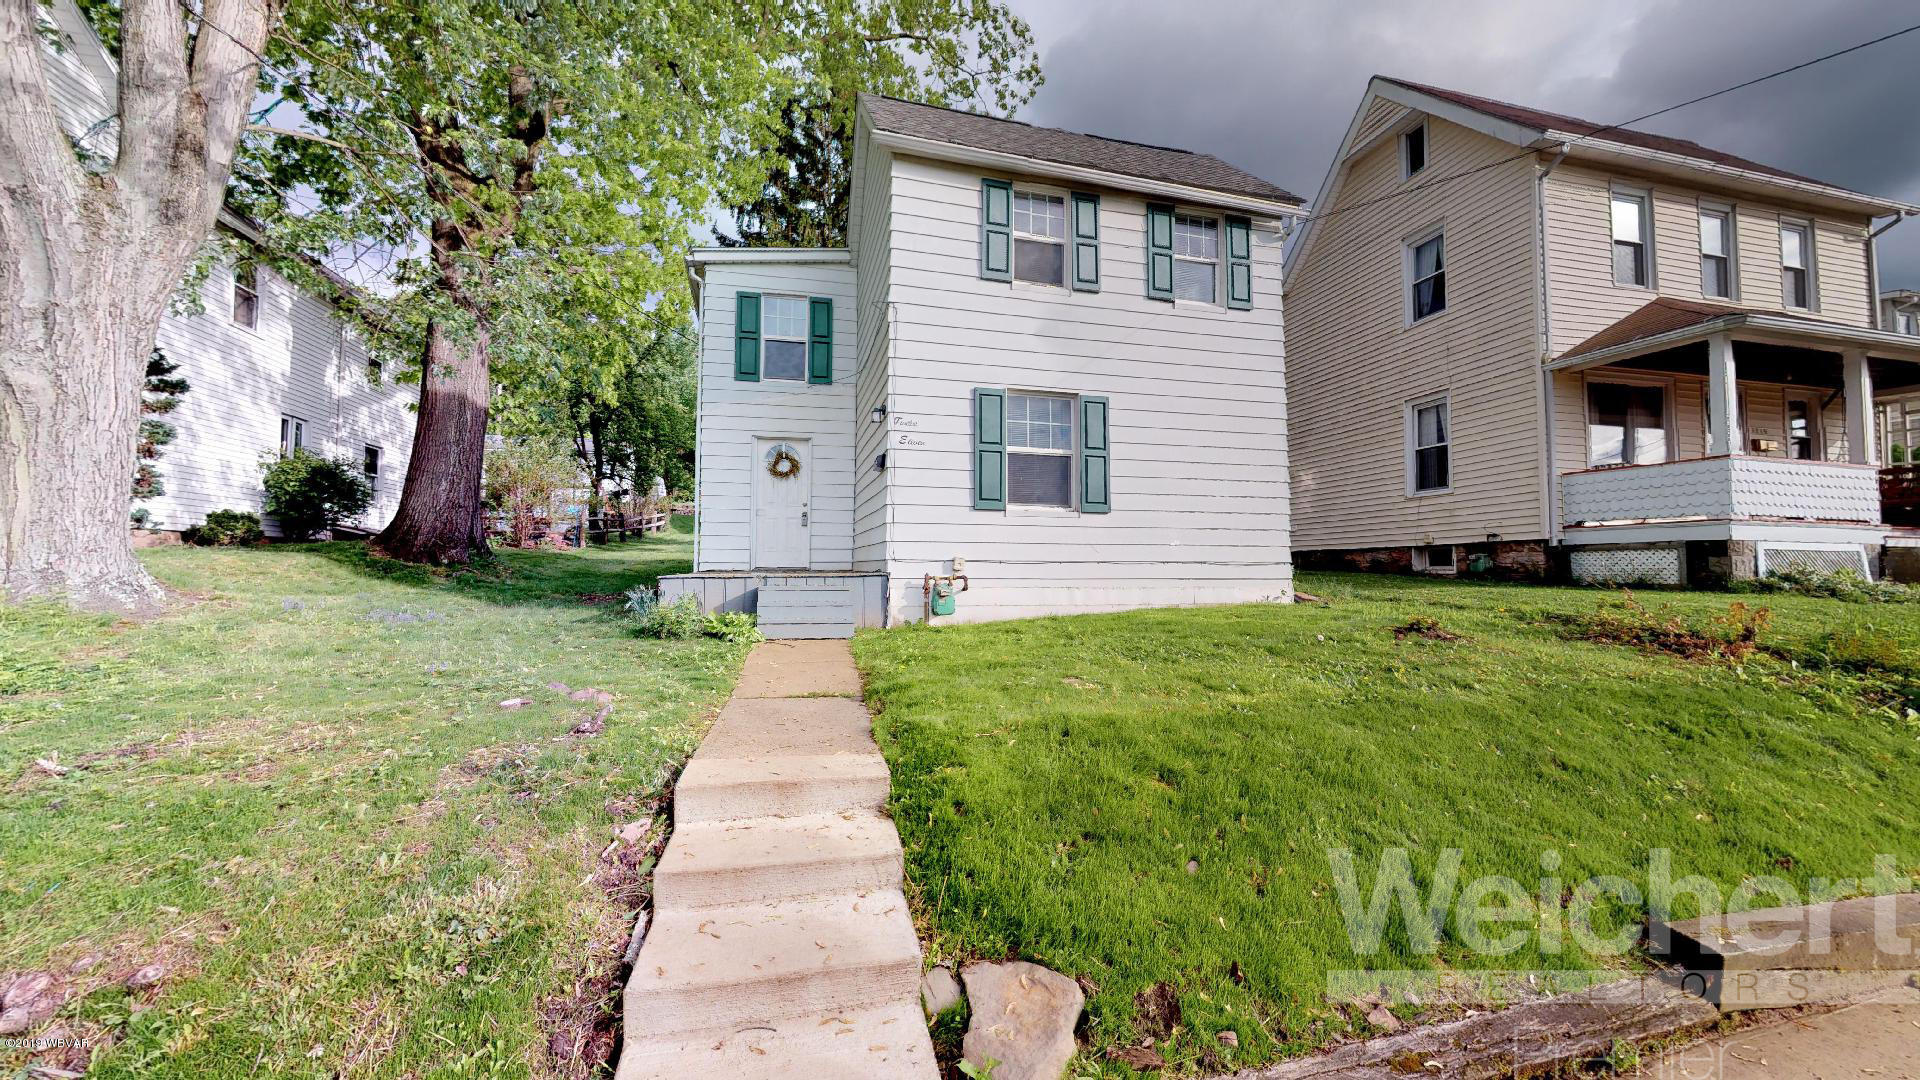 1211 MOUNTAIN AVENUE,S. Williamsport,PA 17702,2 Bedrooms Bedrooms,1 BathroomBathrooms,Residential,MOUNTAIN,WB-88268